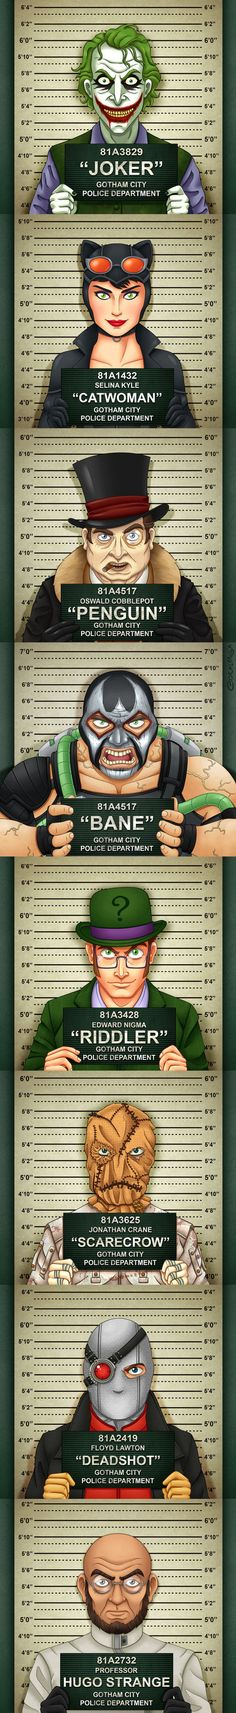 Gotham City Mugshots by Fabio Costalonga on imgfave